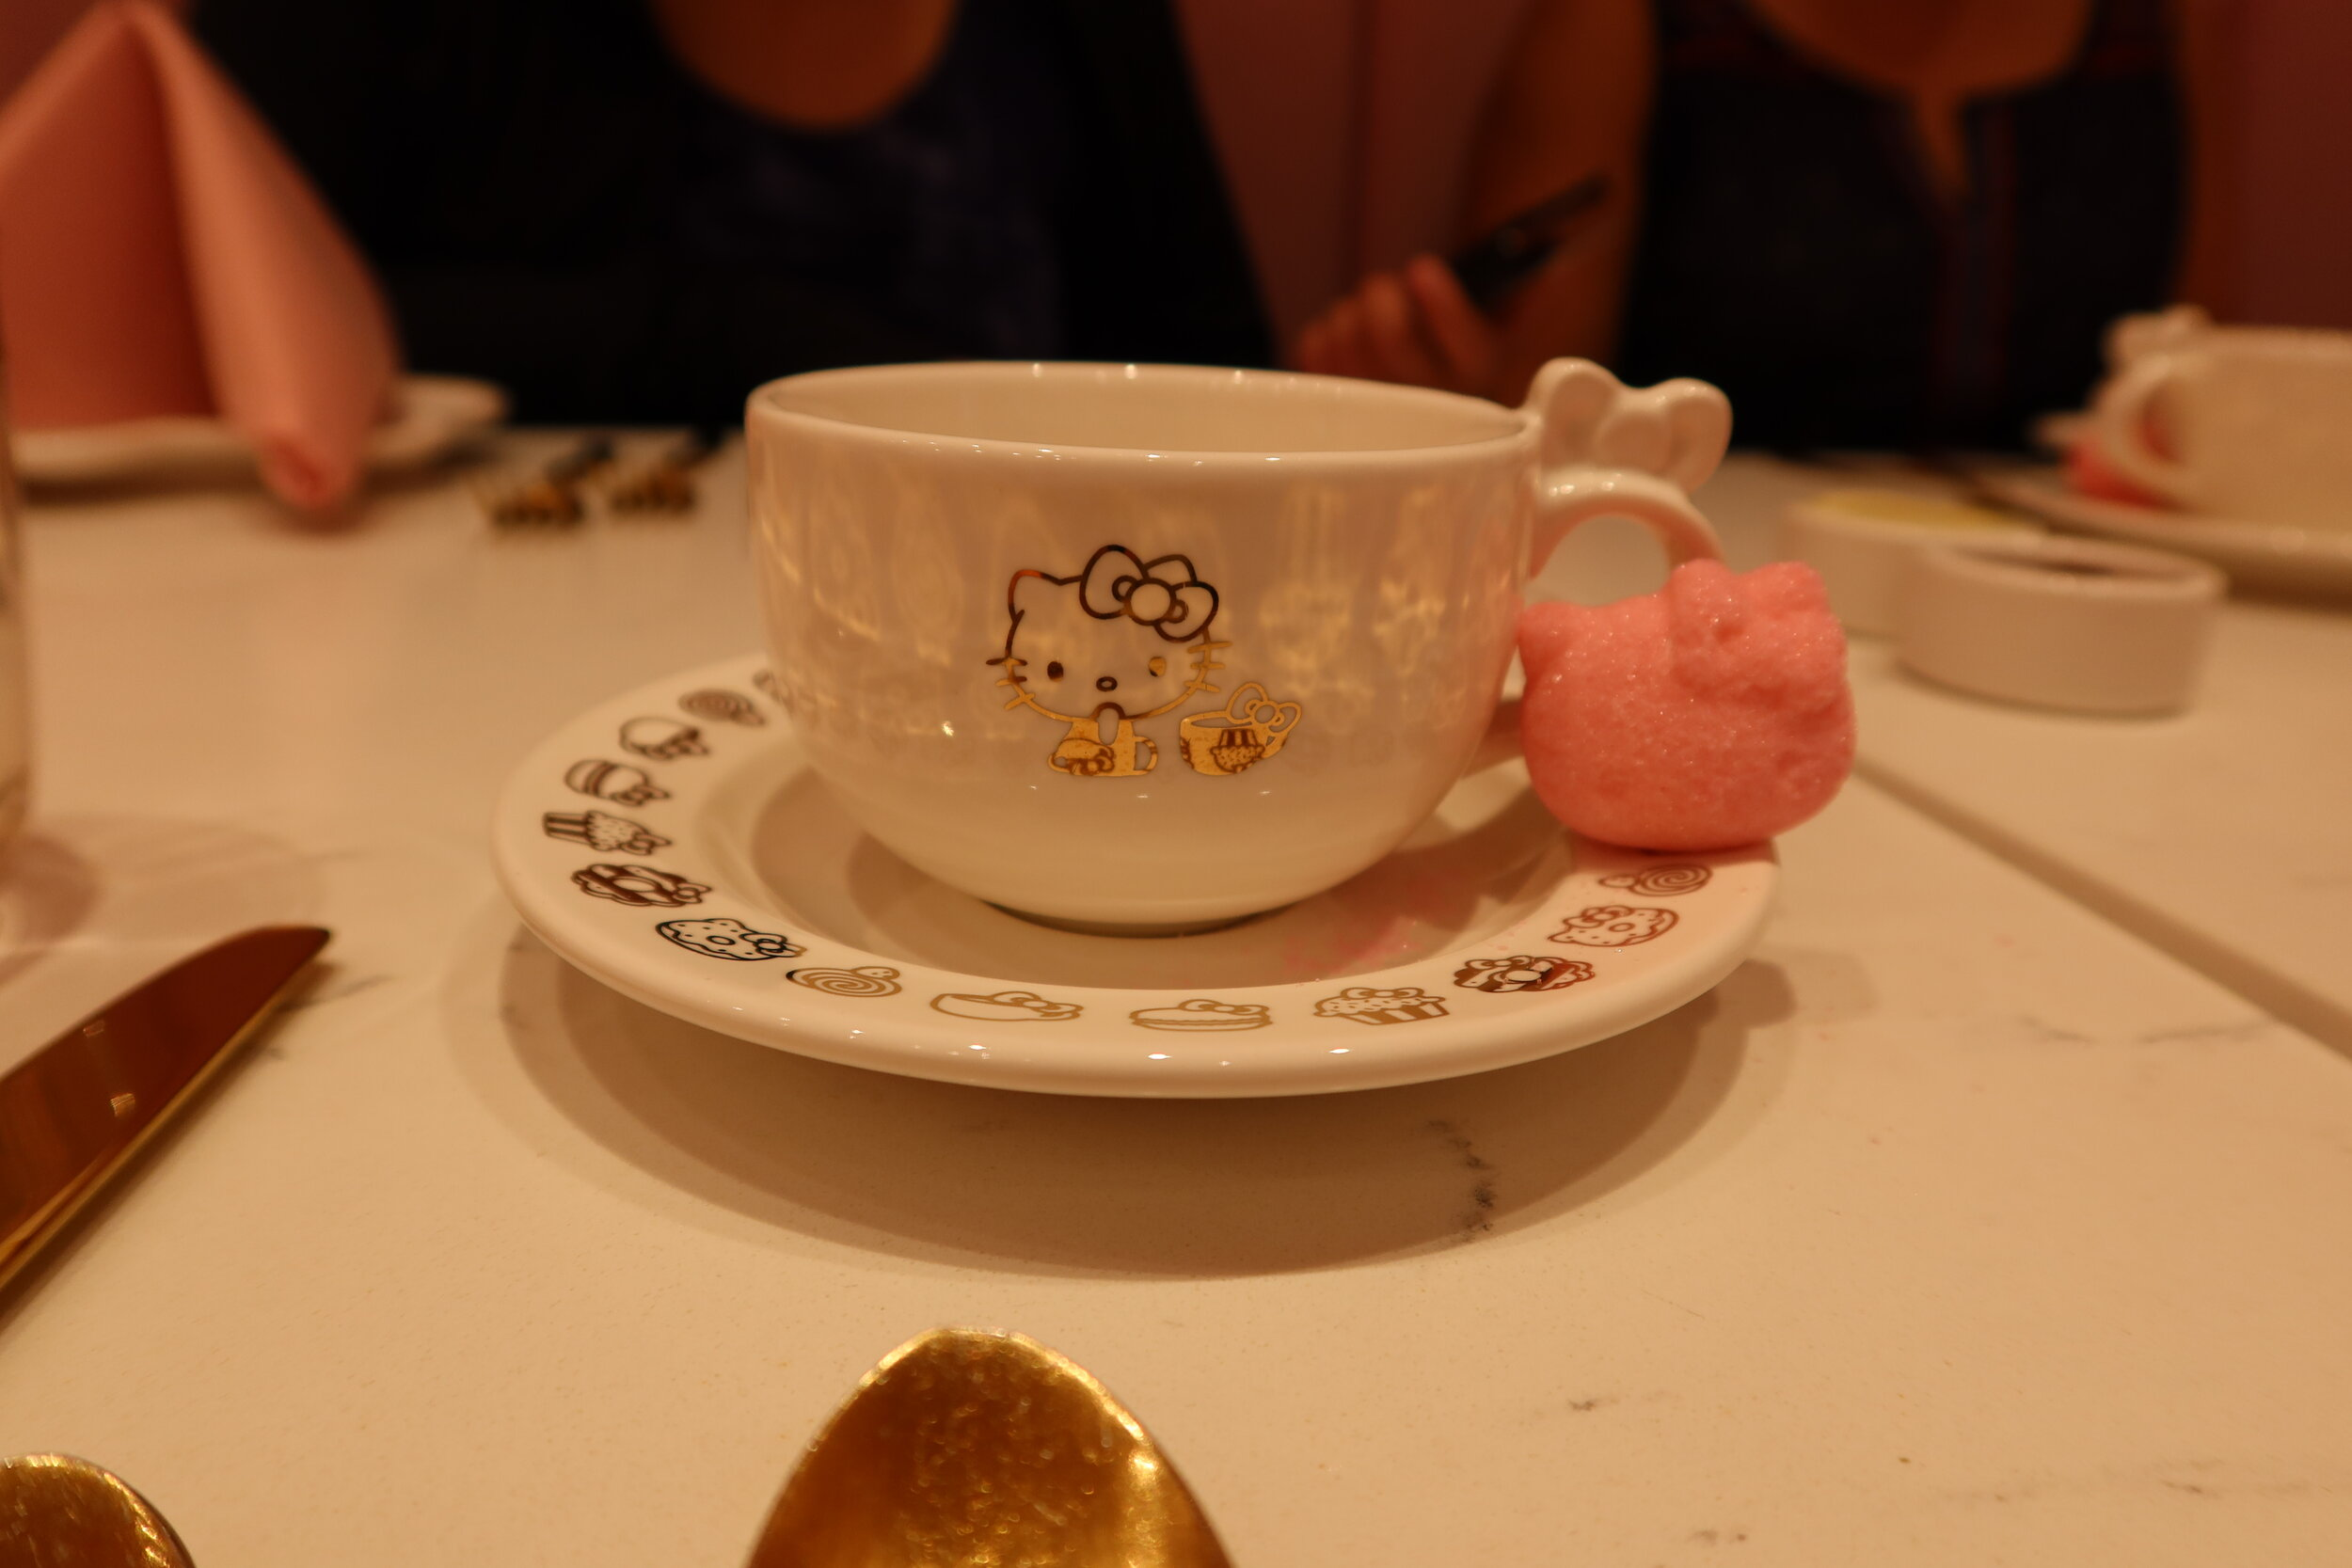 Tea Cup - I want one! Tea Cup & Sugar Cup